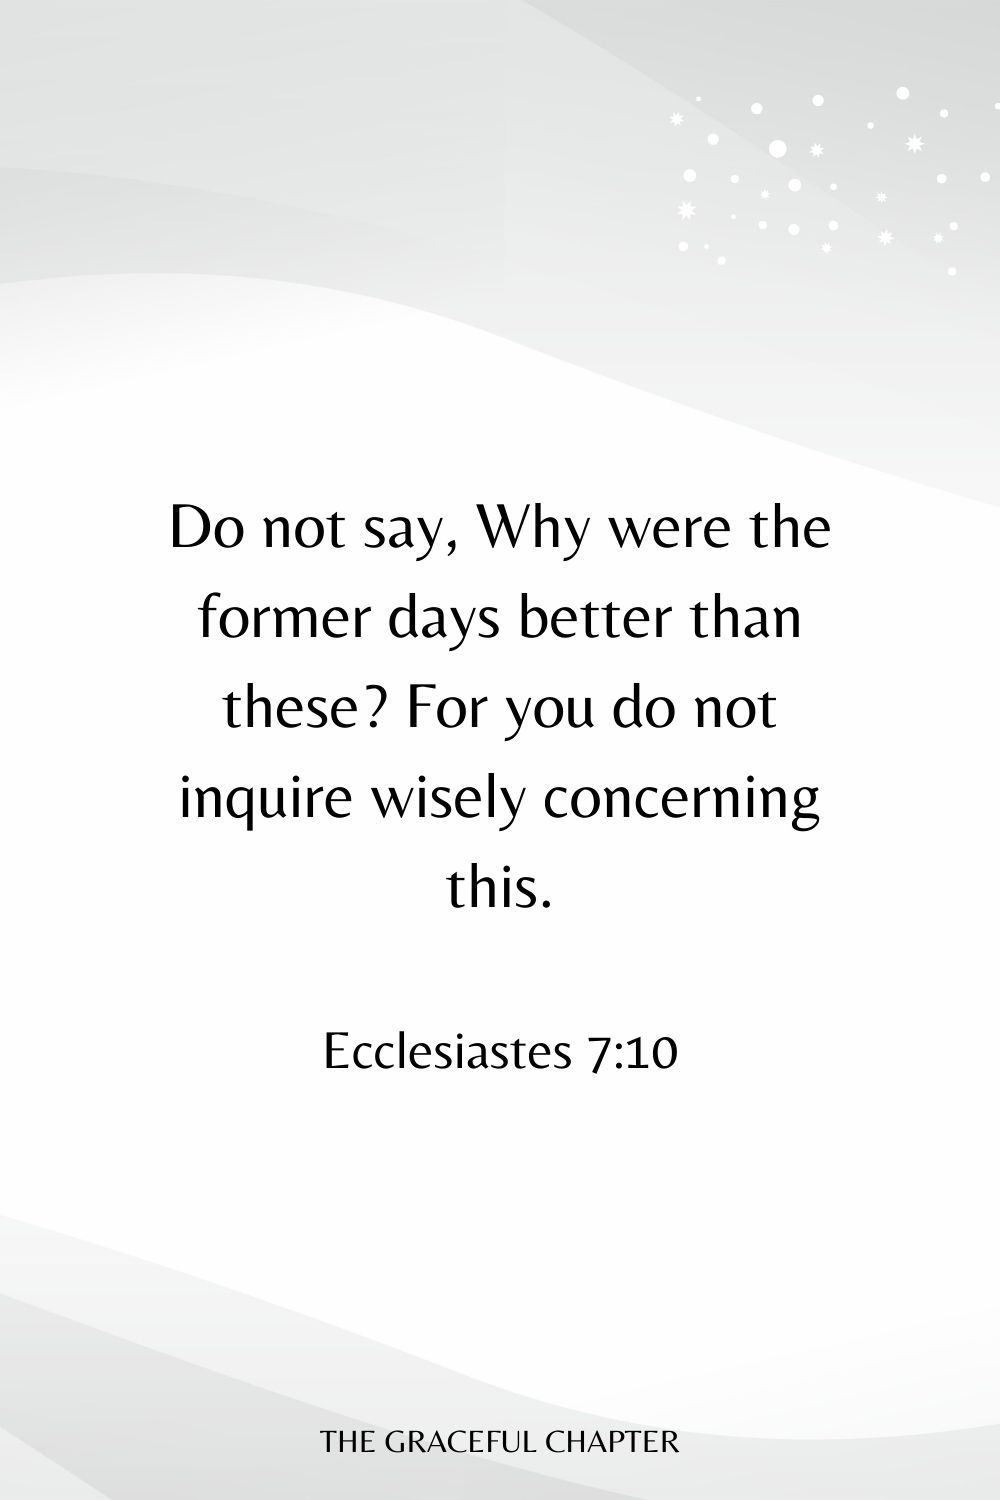 Do not say, Why were the former days better than these? For you do not inquire wisely concerning this. Ecclesiastes 7:10